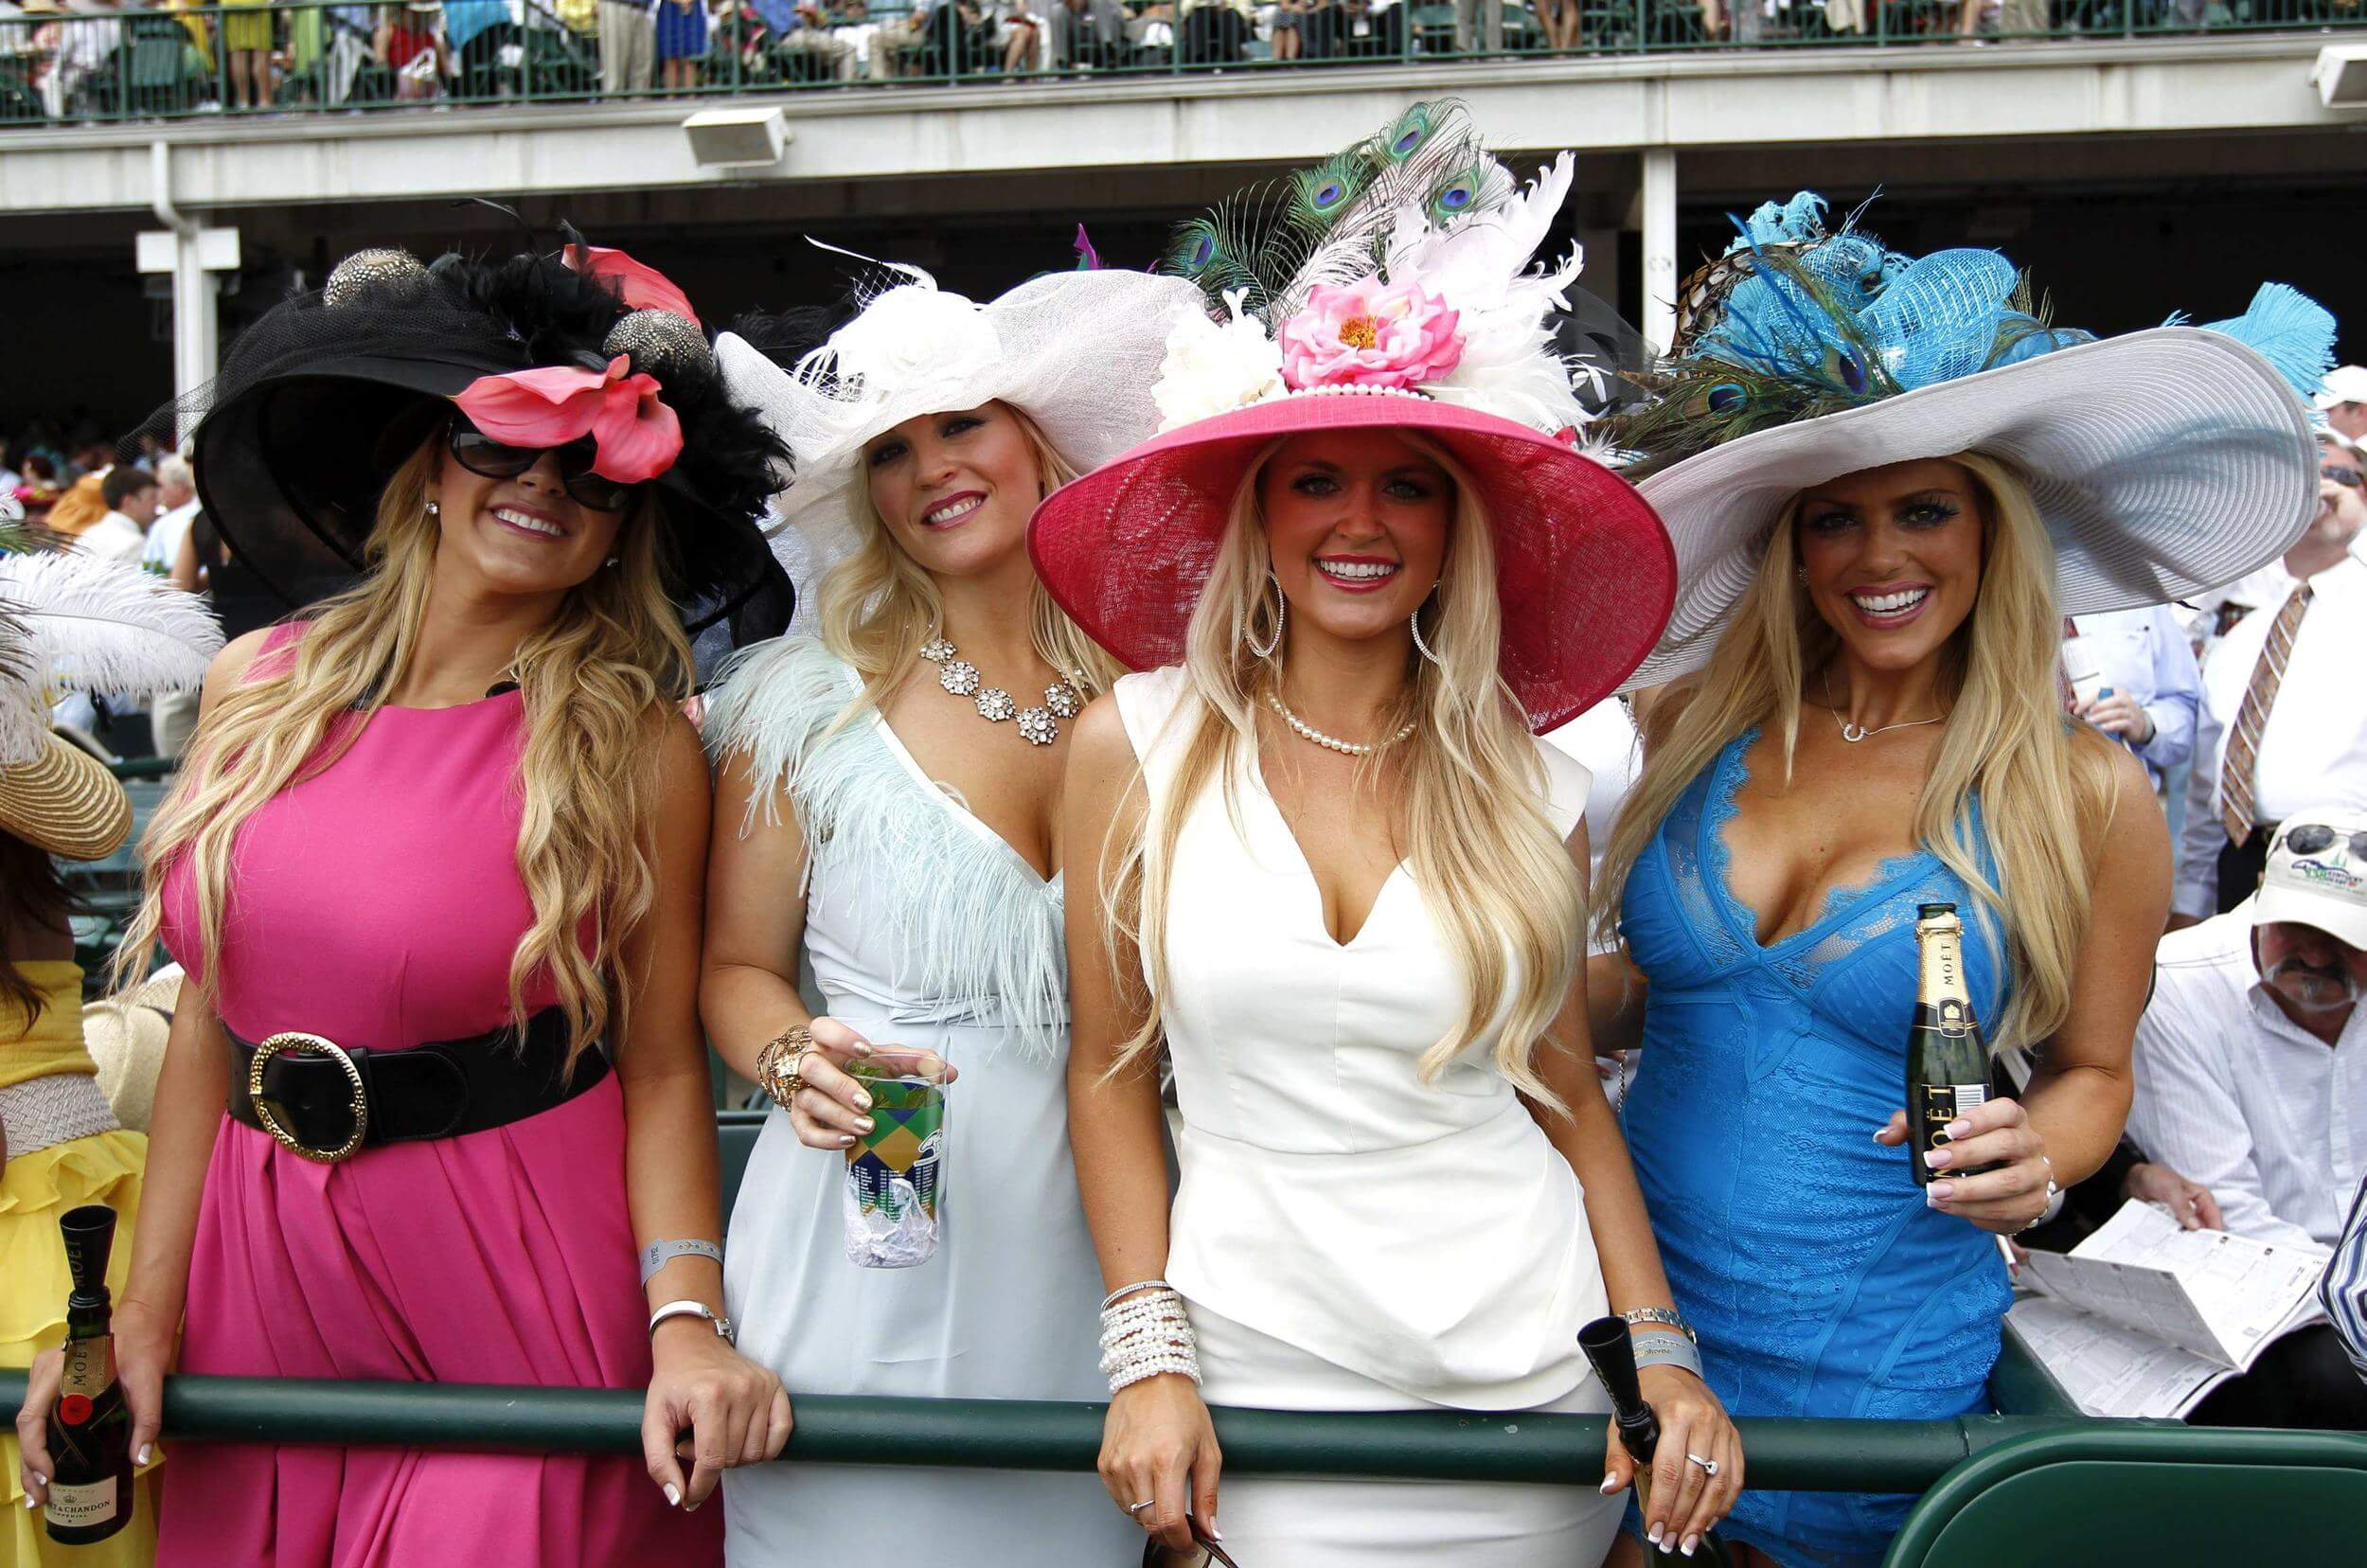 140429-kentucky-derby-hats-mms-1230_20e6a901cf311a3ea0b0c716bbd2df76